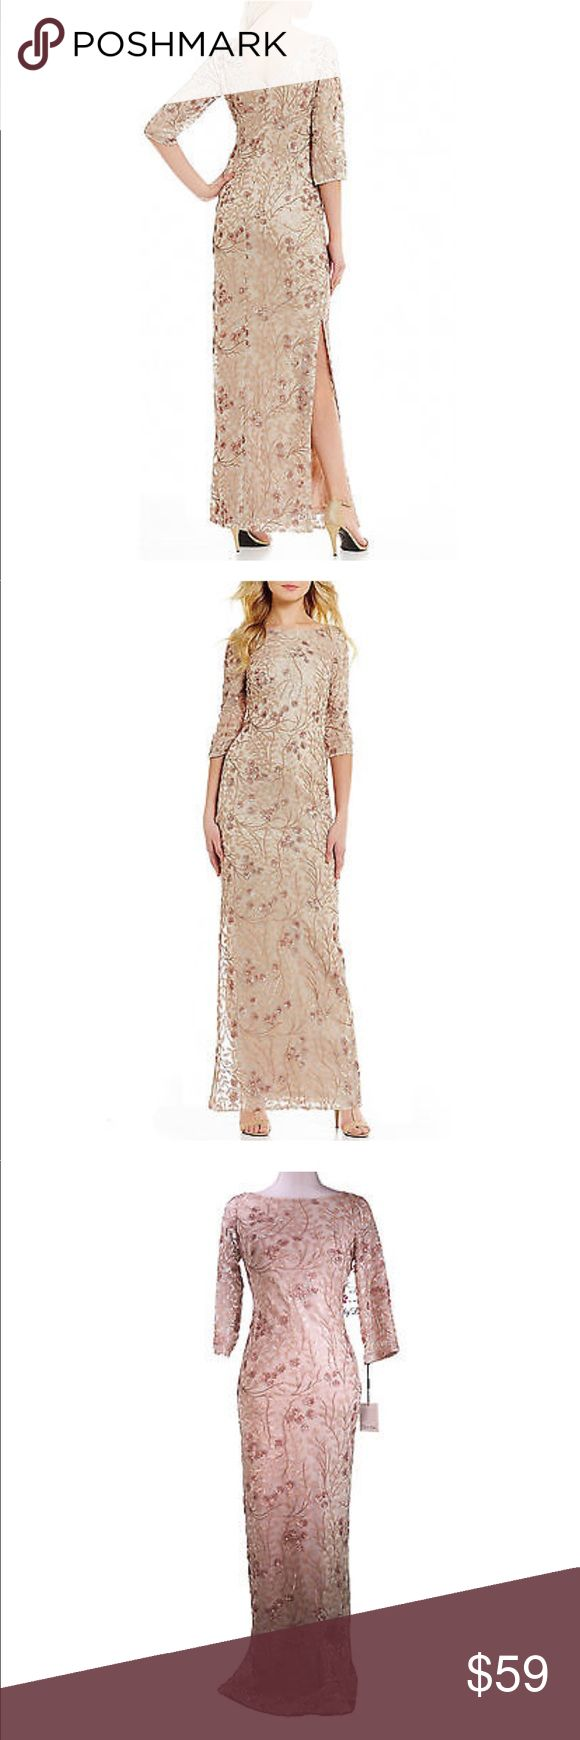 Calvin Klein sequin column dress Calvin Klein floral sequin dress. 3/4 sleeve and daring slit up the leg. Beautiful champagne tone gown. New with tags Calvin Klein Dresses